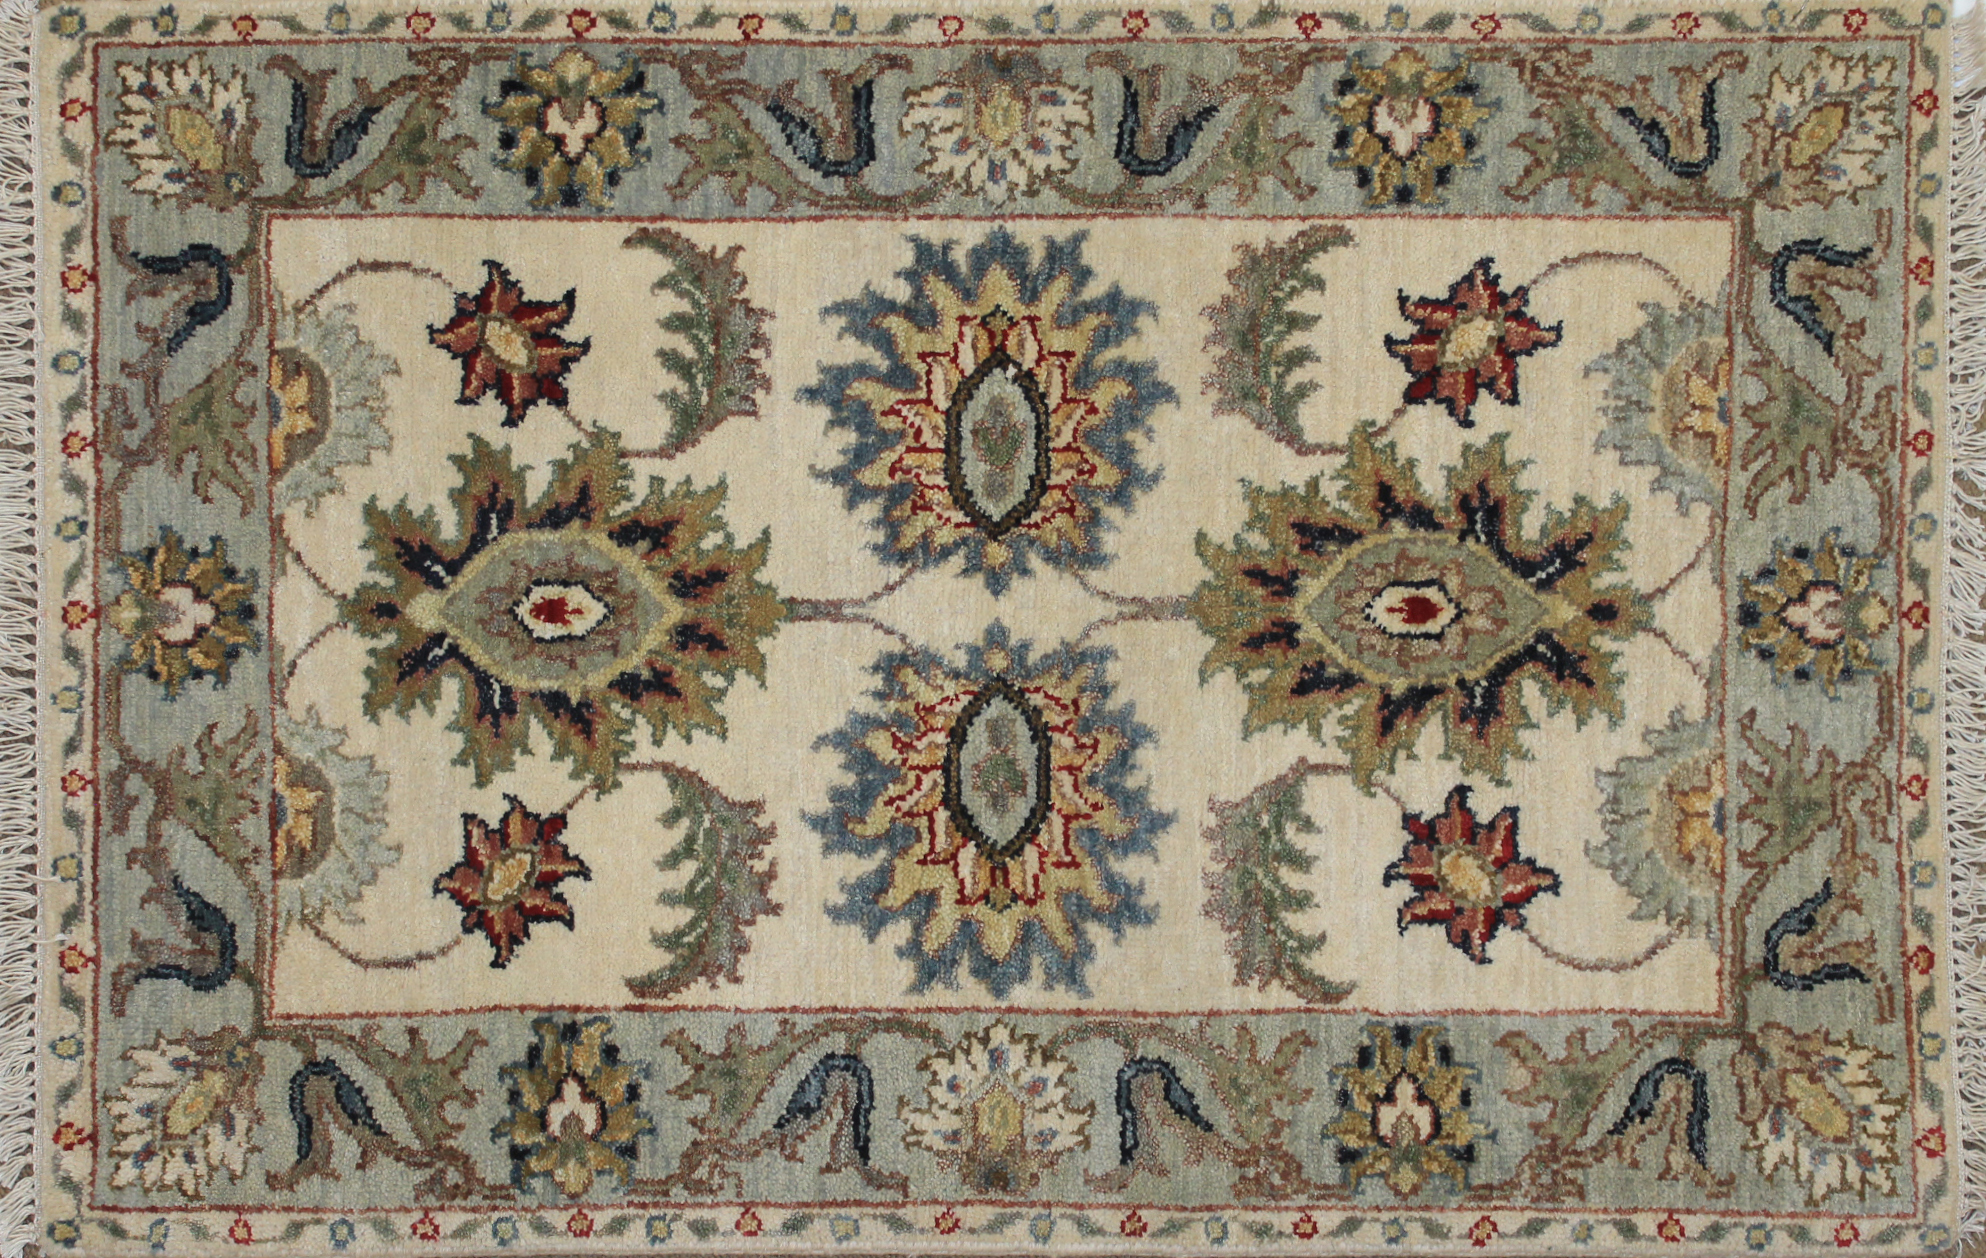 2X3 Traditional Hand Knotted Wool Area Rug - MR025034